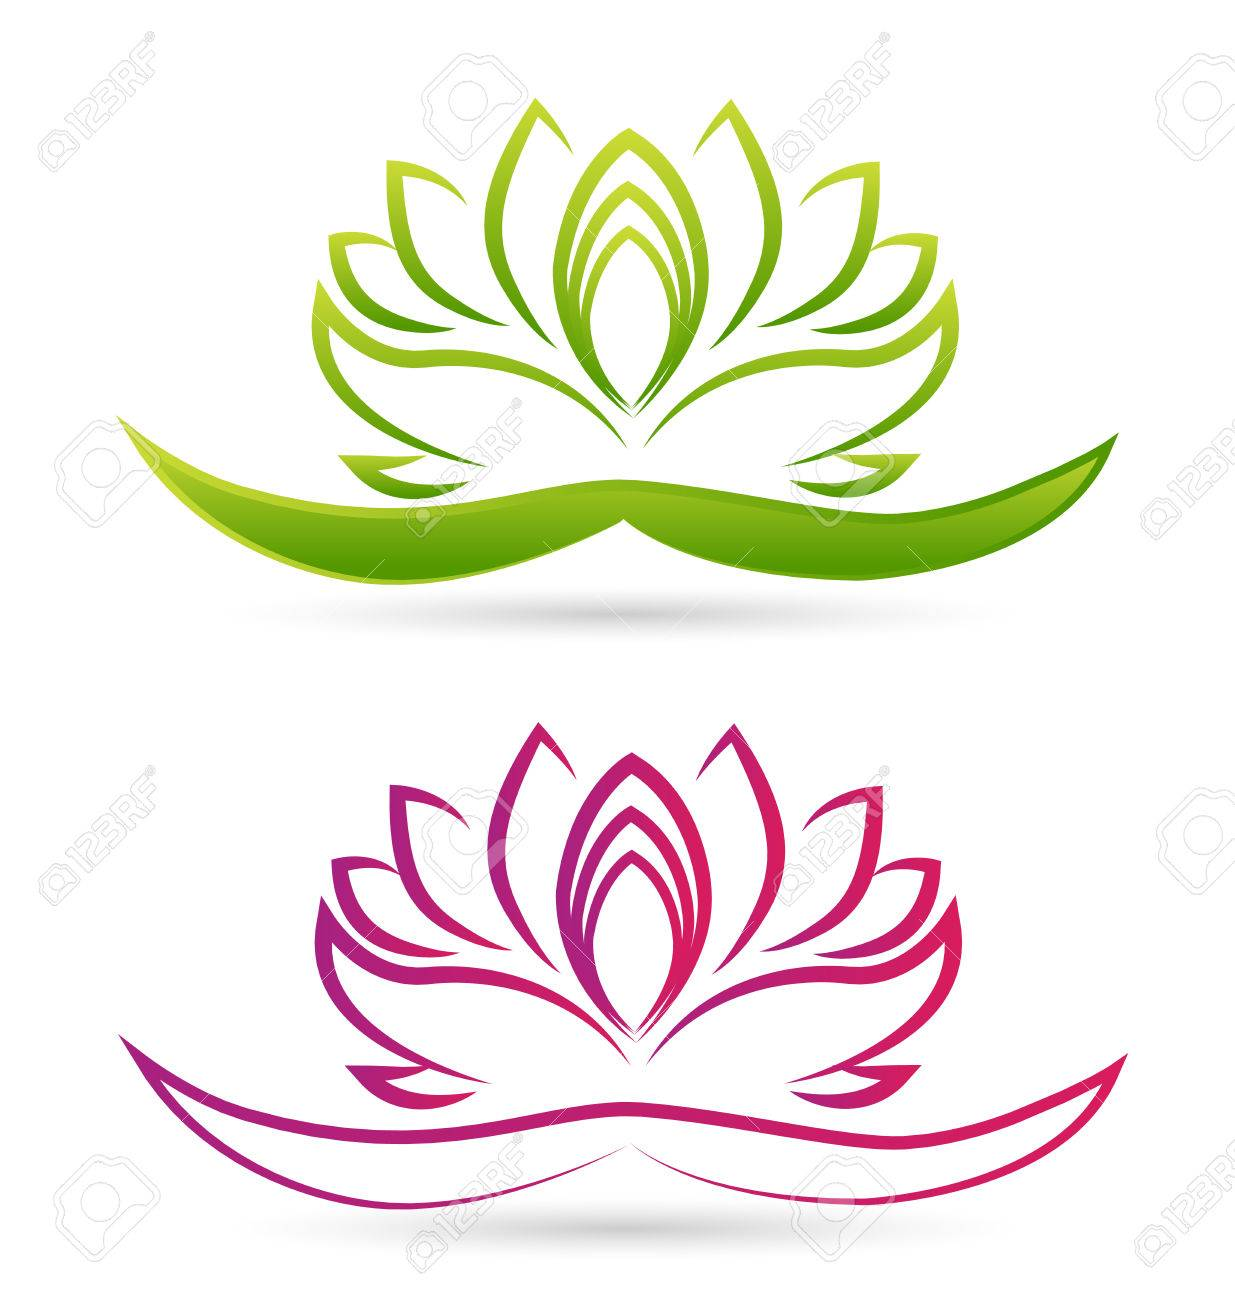 Lotus flower vector royalty free cliparts vectors and stock lotus flower vector stock vector 38277414 mightylinksfo